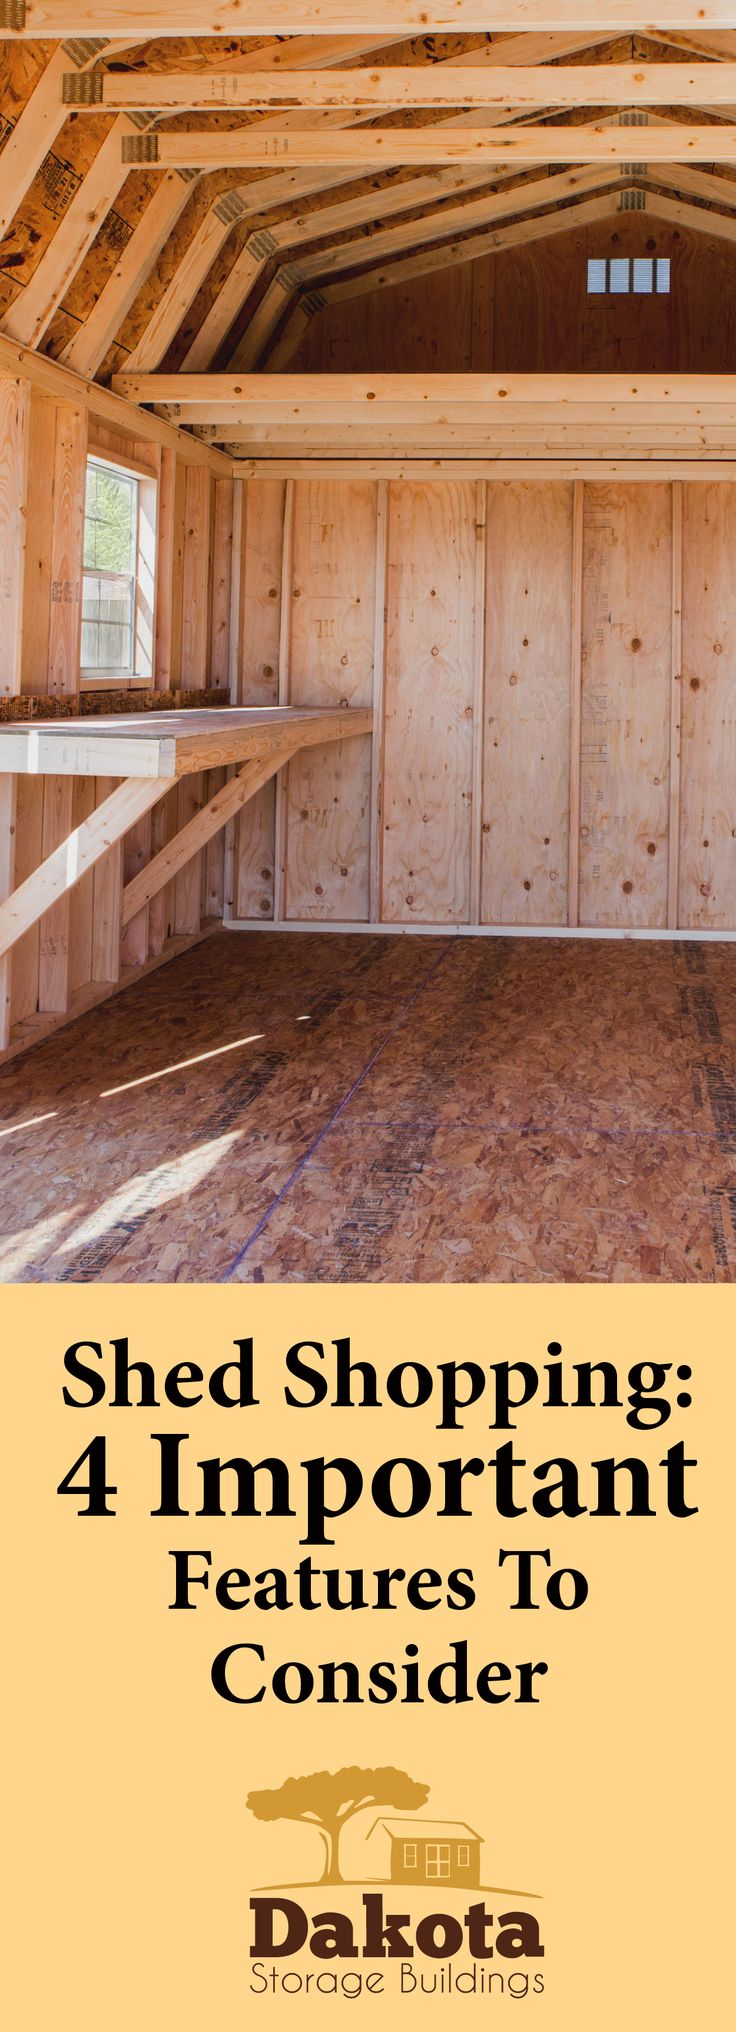 If you're looking to expand your outside storage space, consider one of our customizable sheds. We have top-of-the-line sheds with high-quality features that won't cost you a bundle.